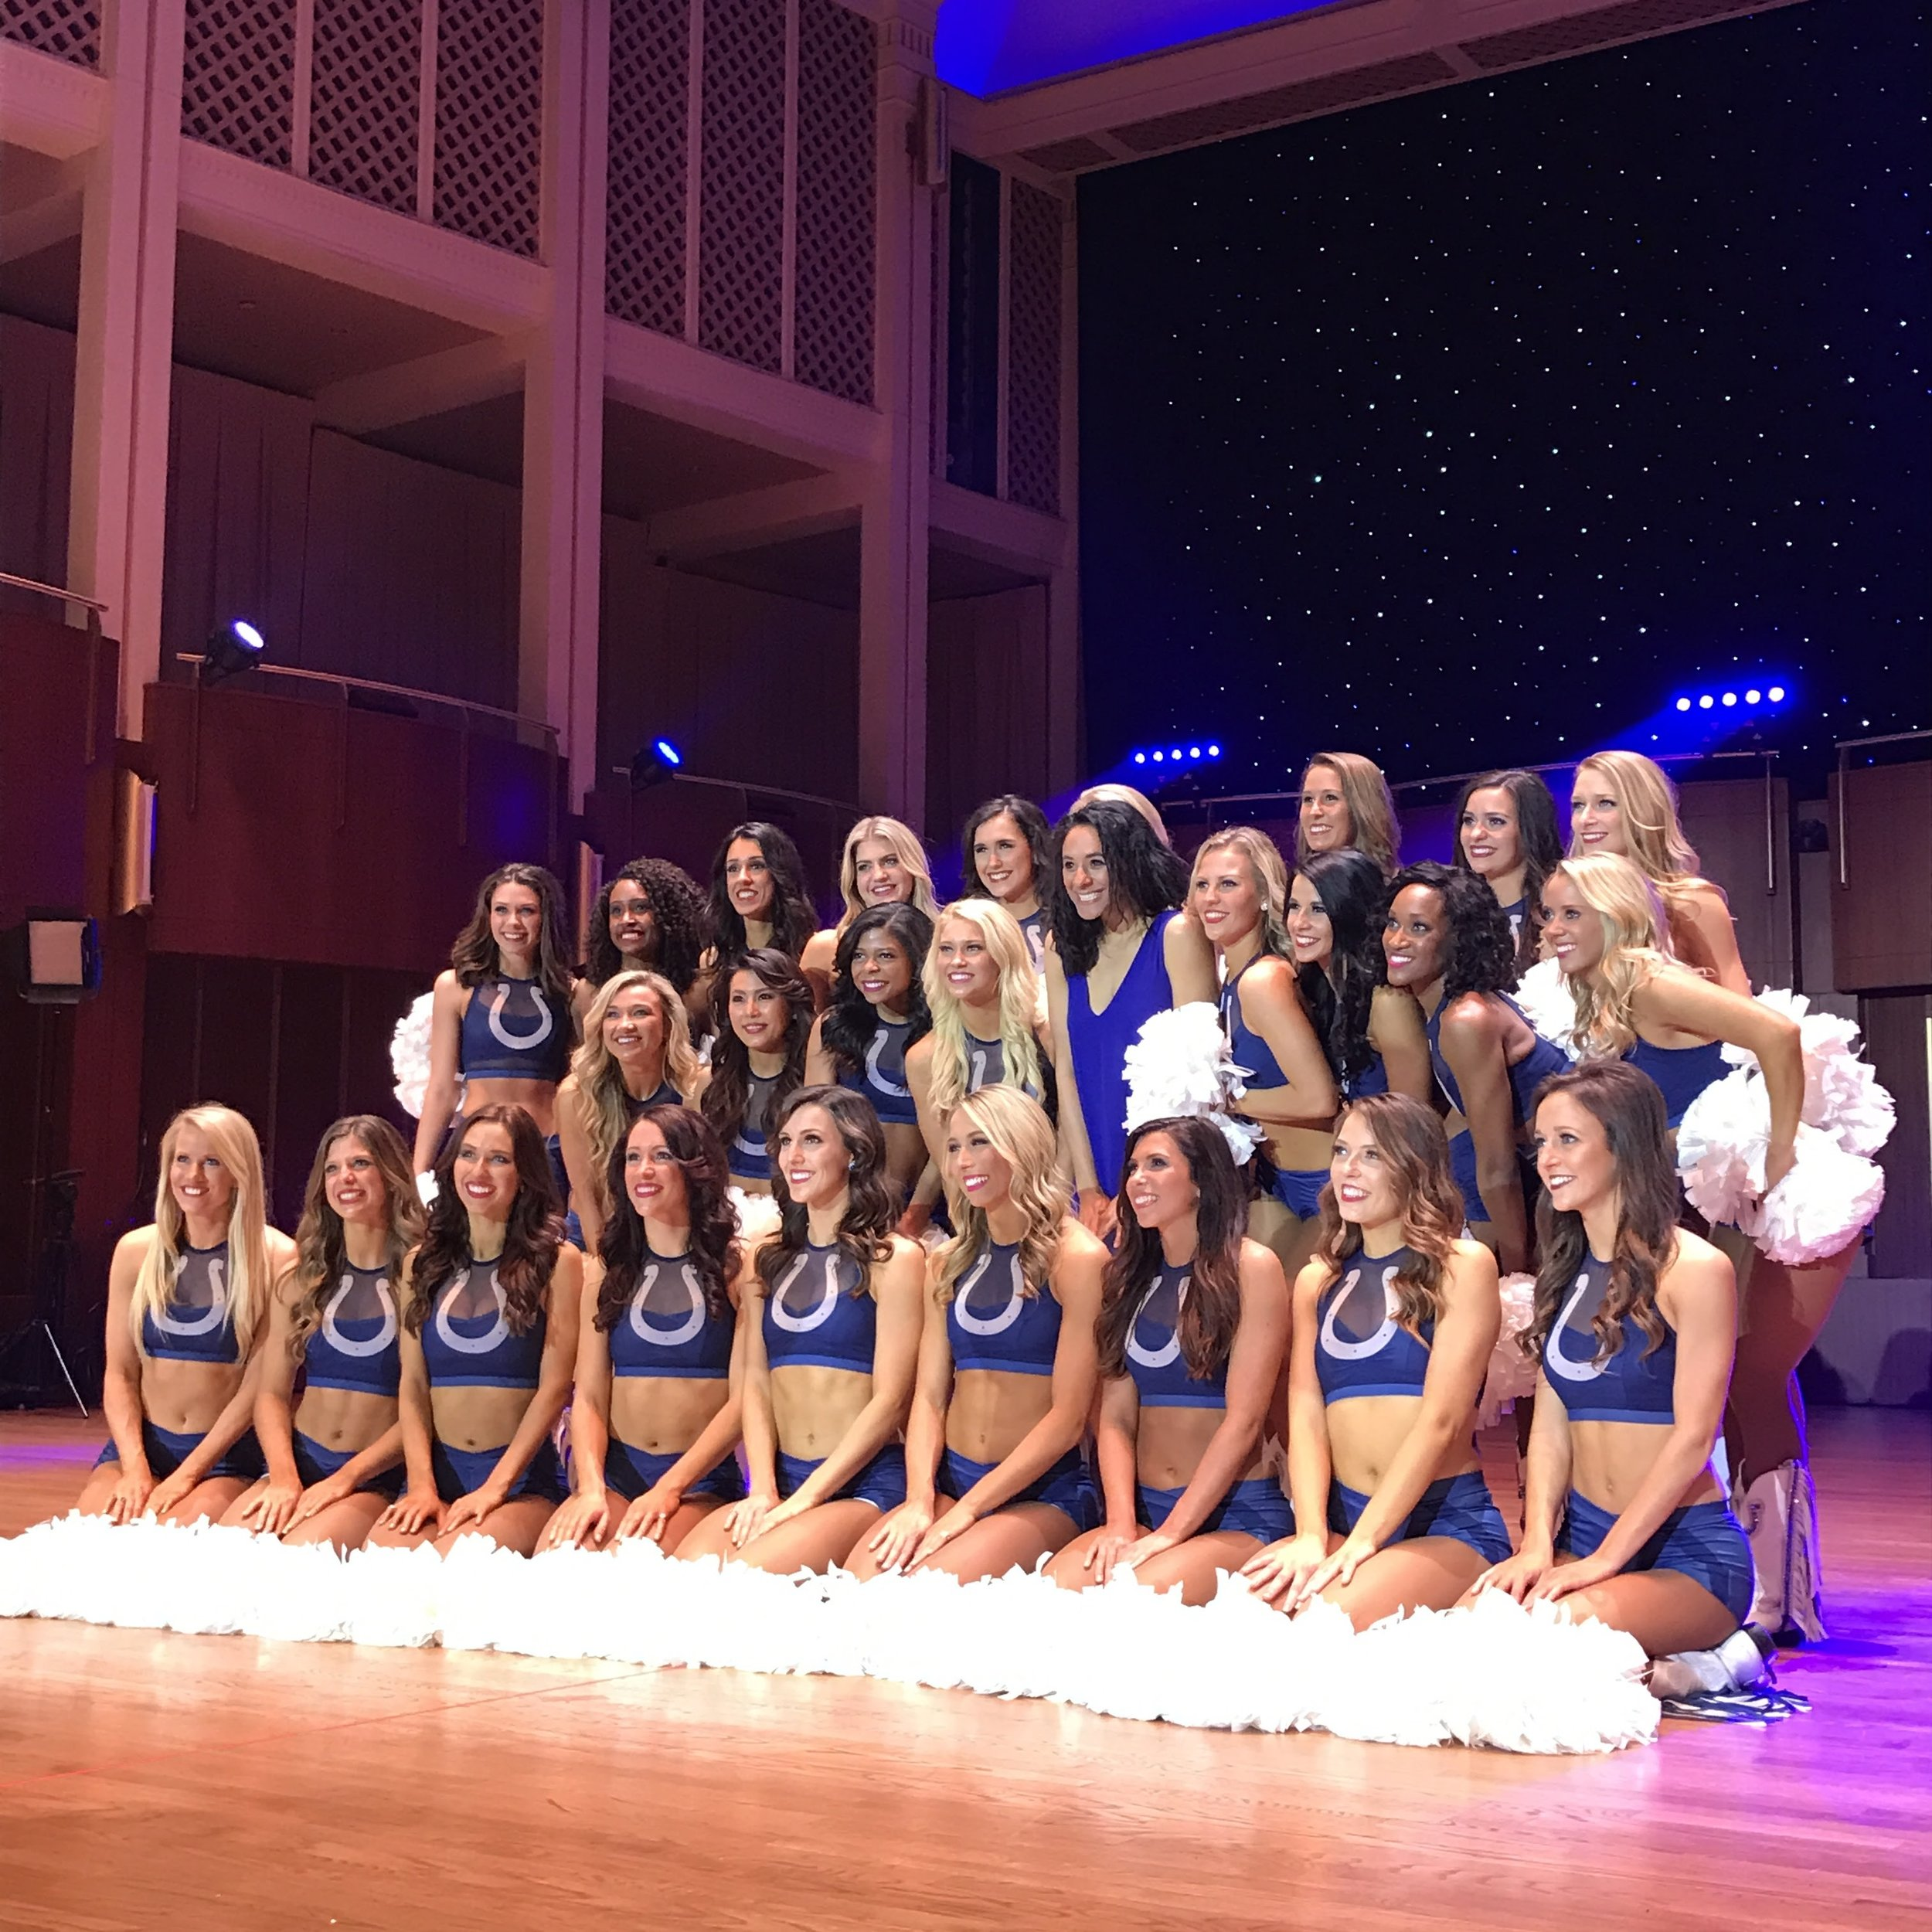 Open Gym Members-Indianapolis Colts Cheerleaders